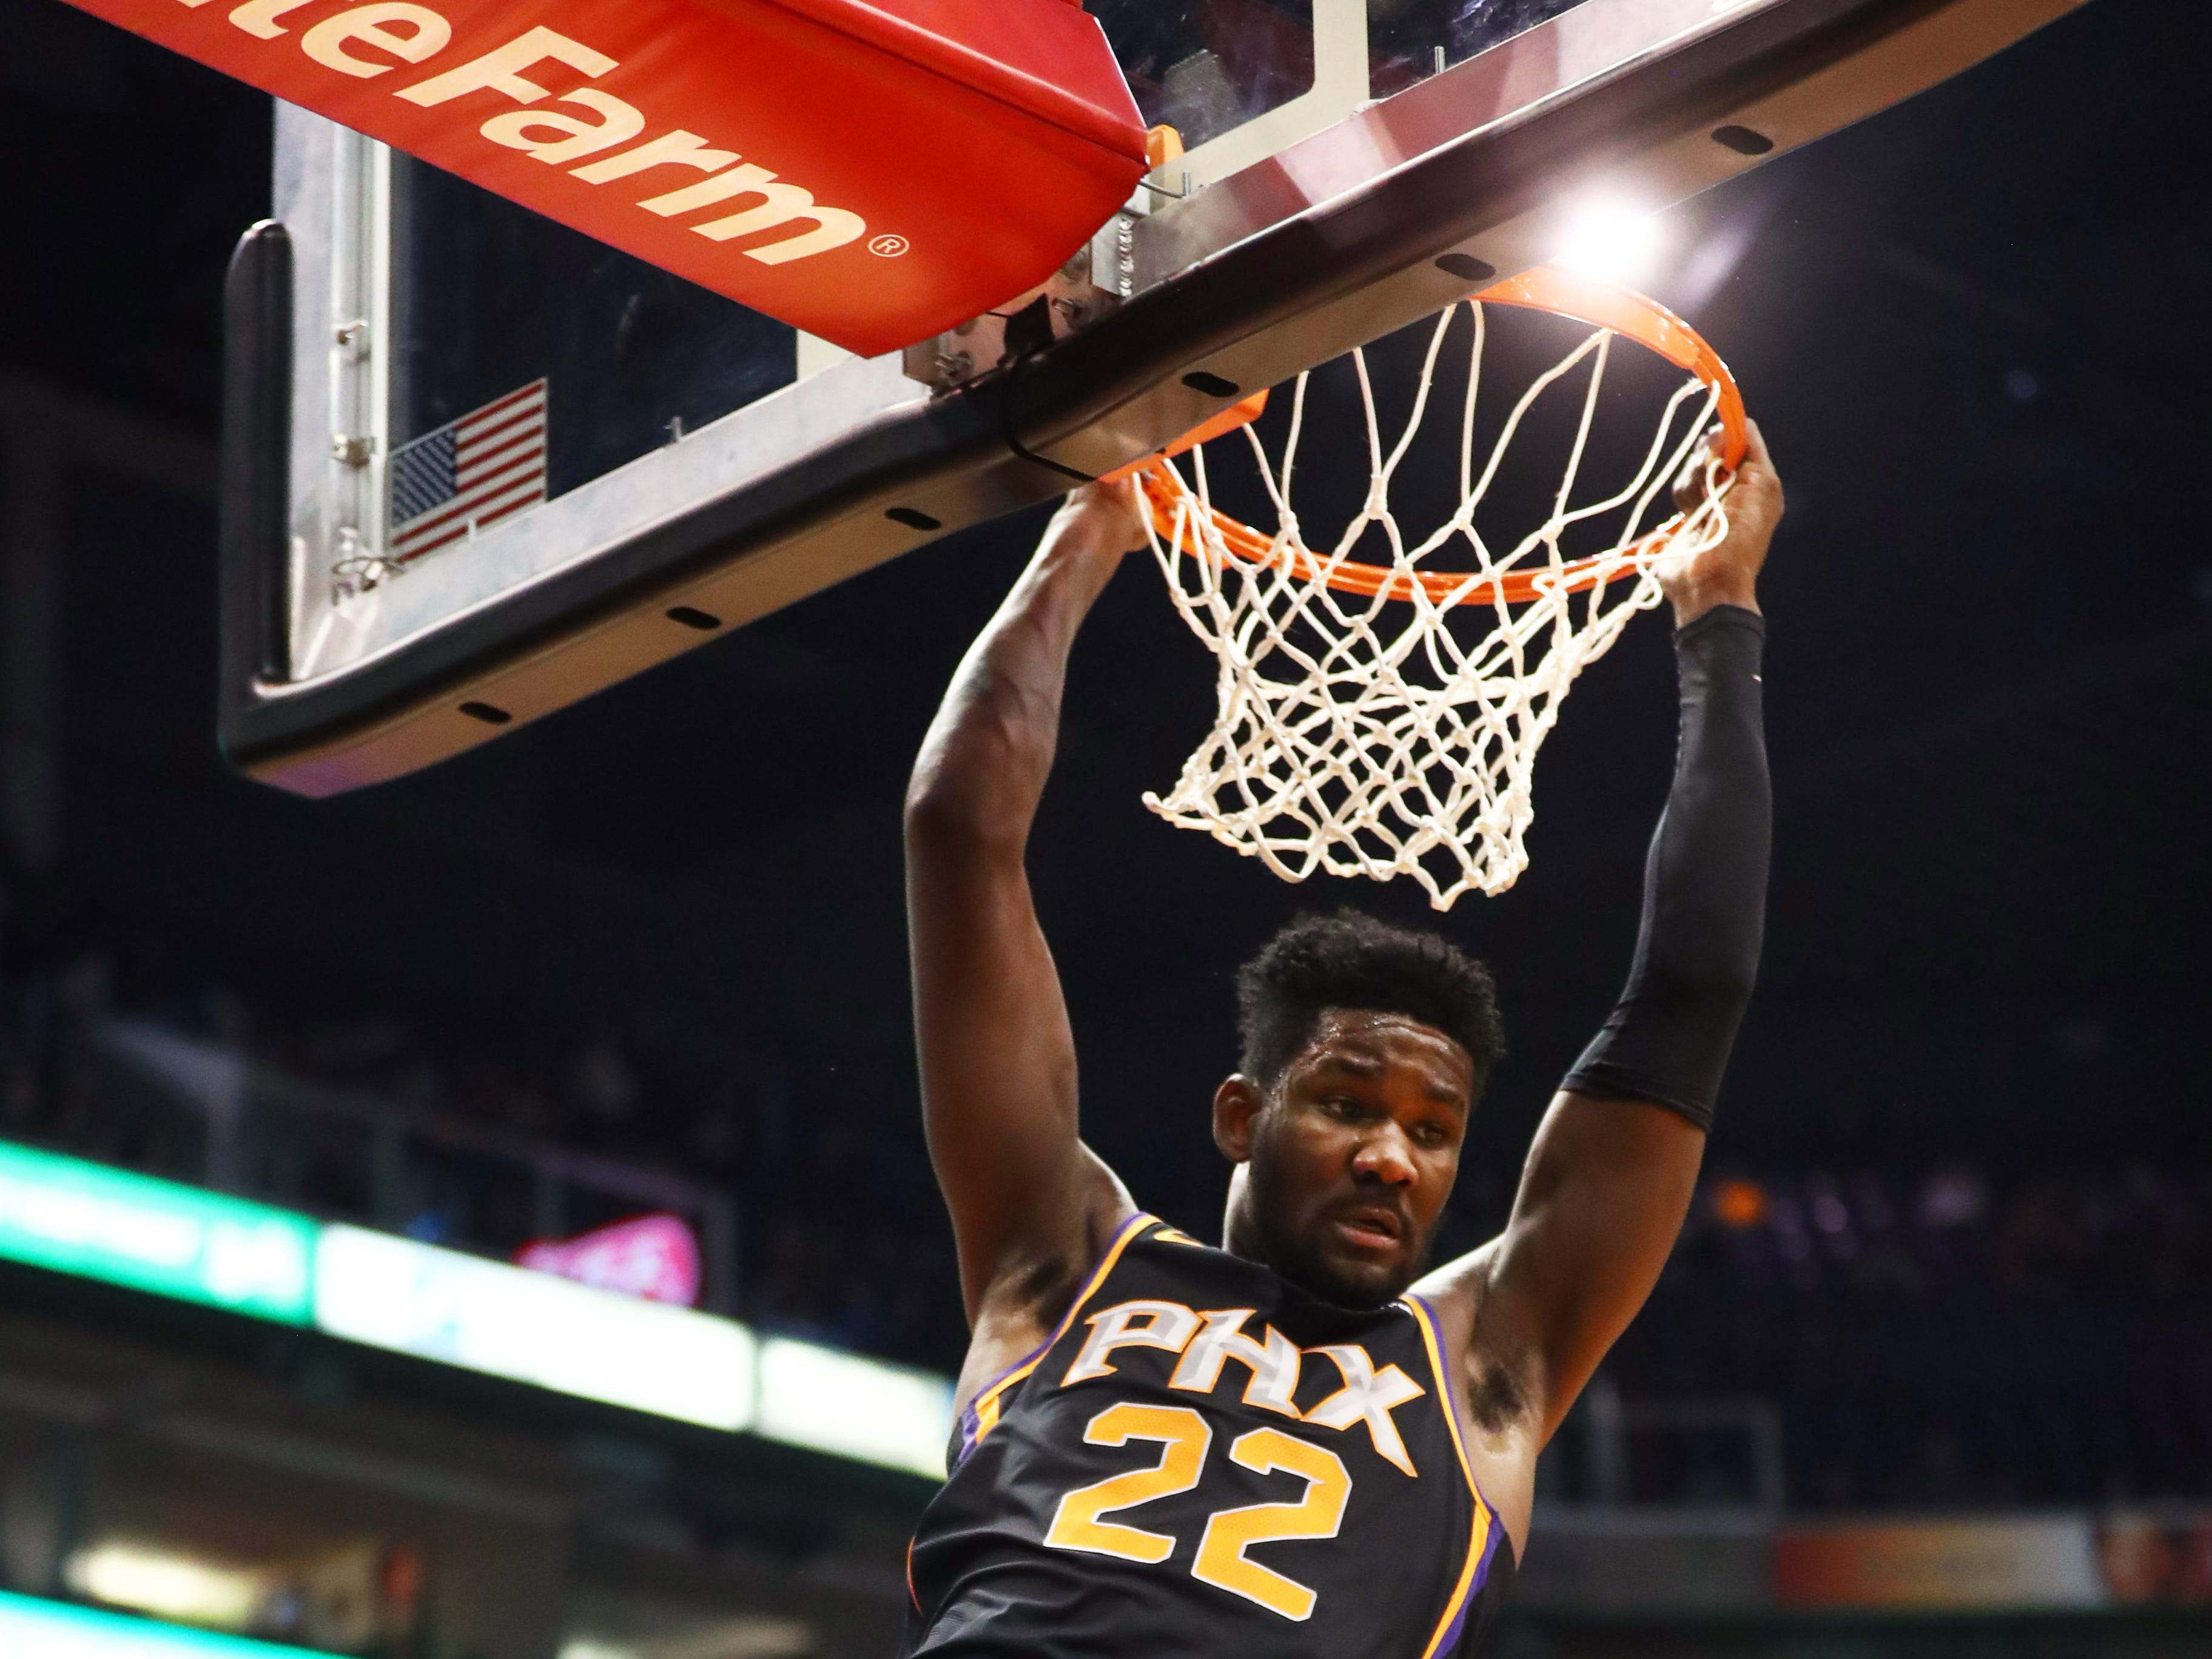 Dec 15, 2018; Phoenix, AZ, USA; Phoenix Suns center Deandre Ayton (22) slam dunks the ball over Minnesota Timberwolves center Gorgui Dieng in the first half at Talking Stick Resort Arena. Mandatory Credit: Mark J. Rebilas-USA TODAY Sports